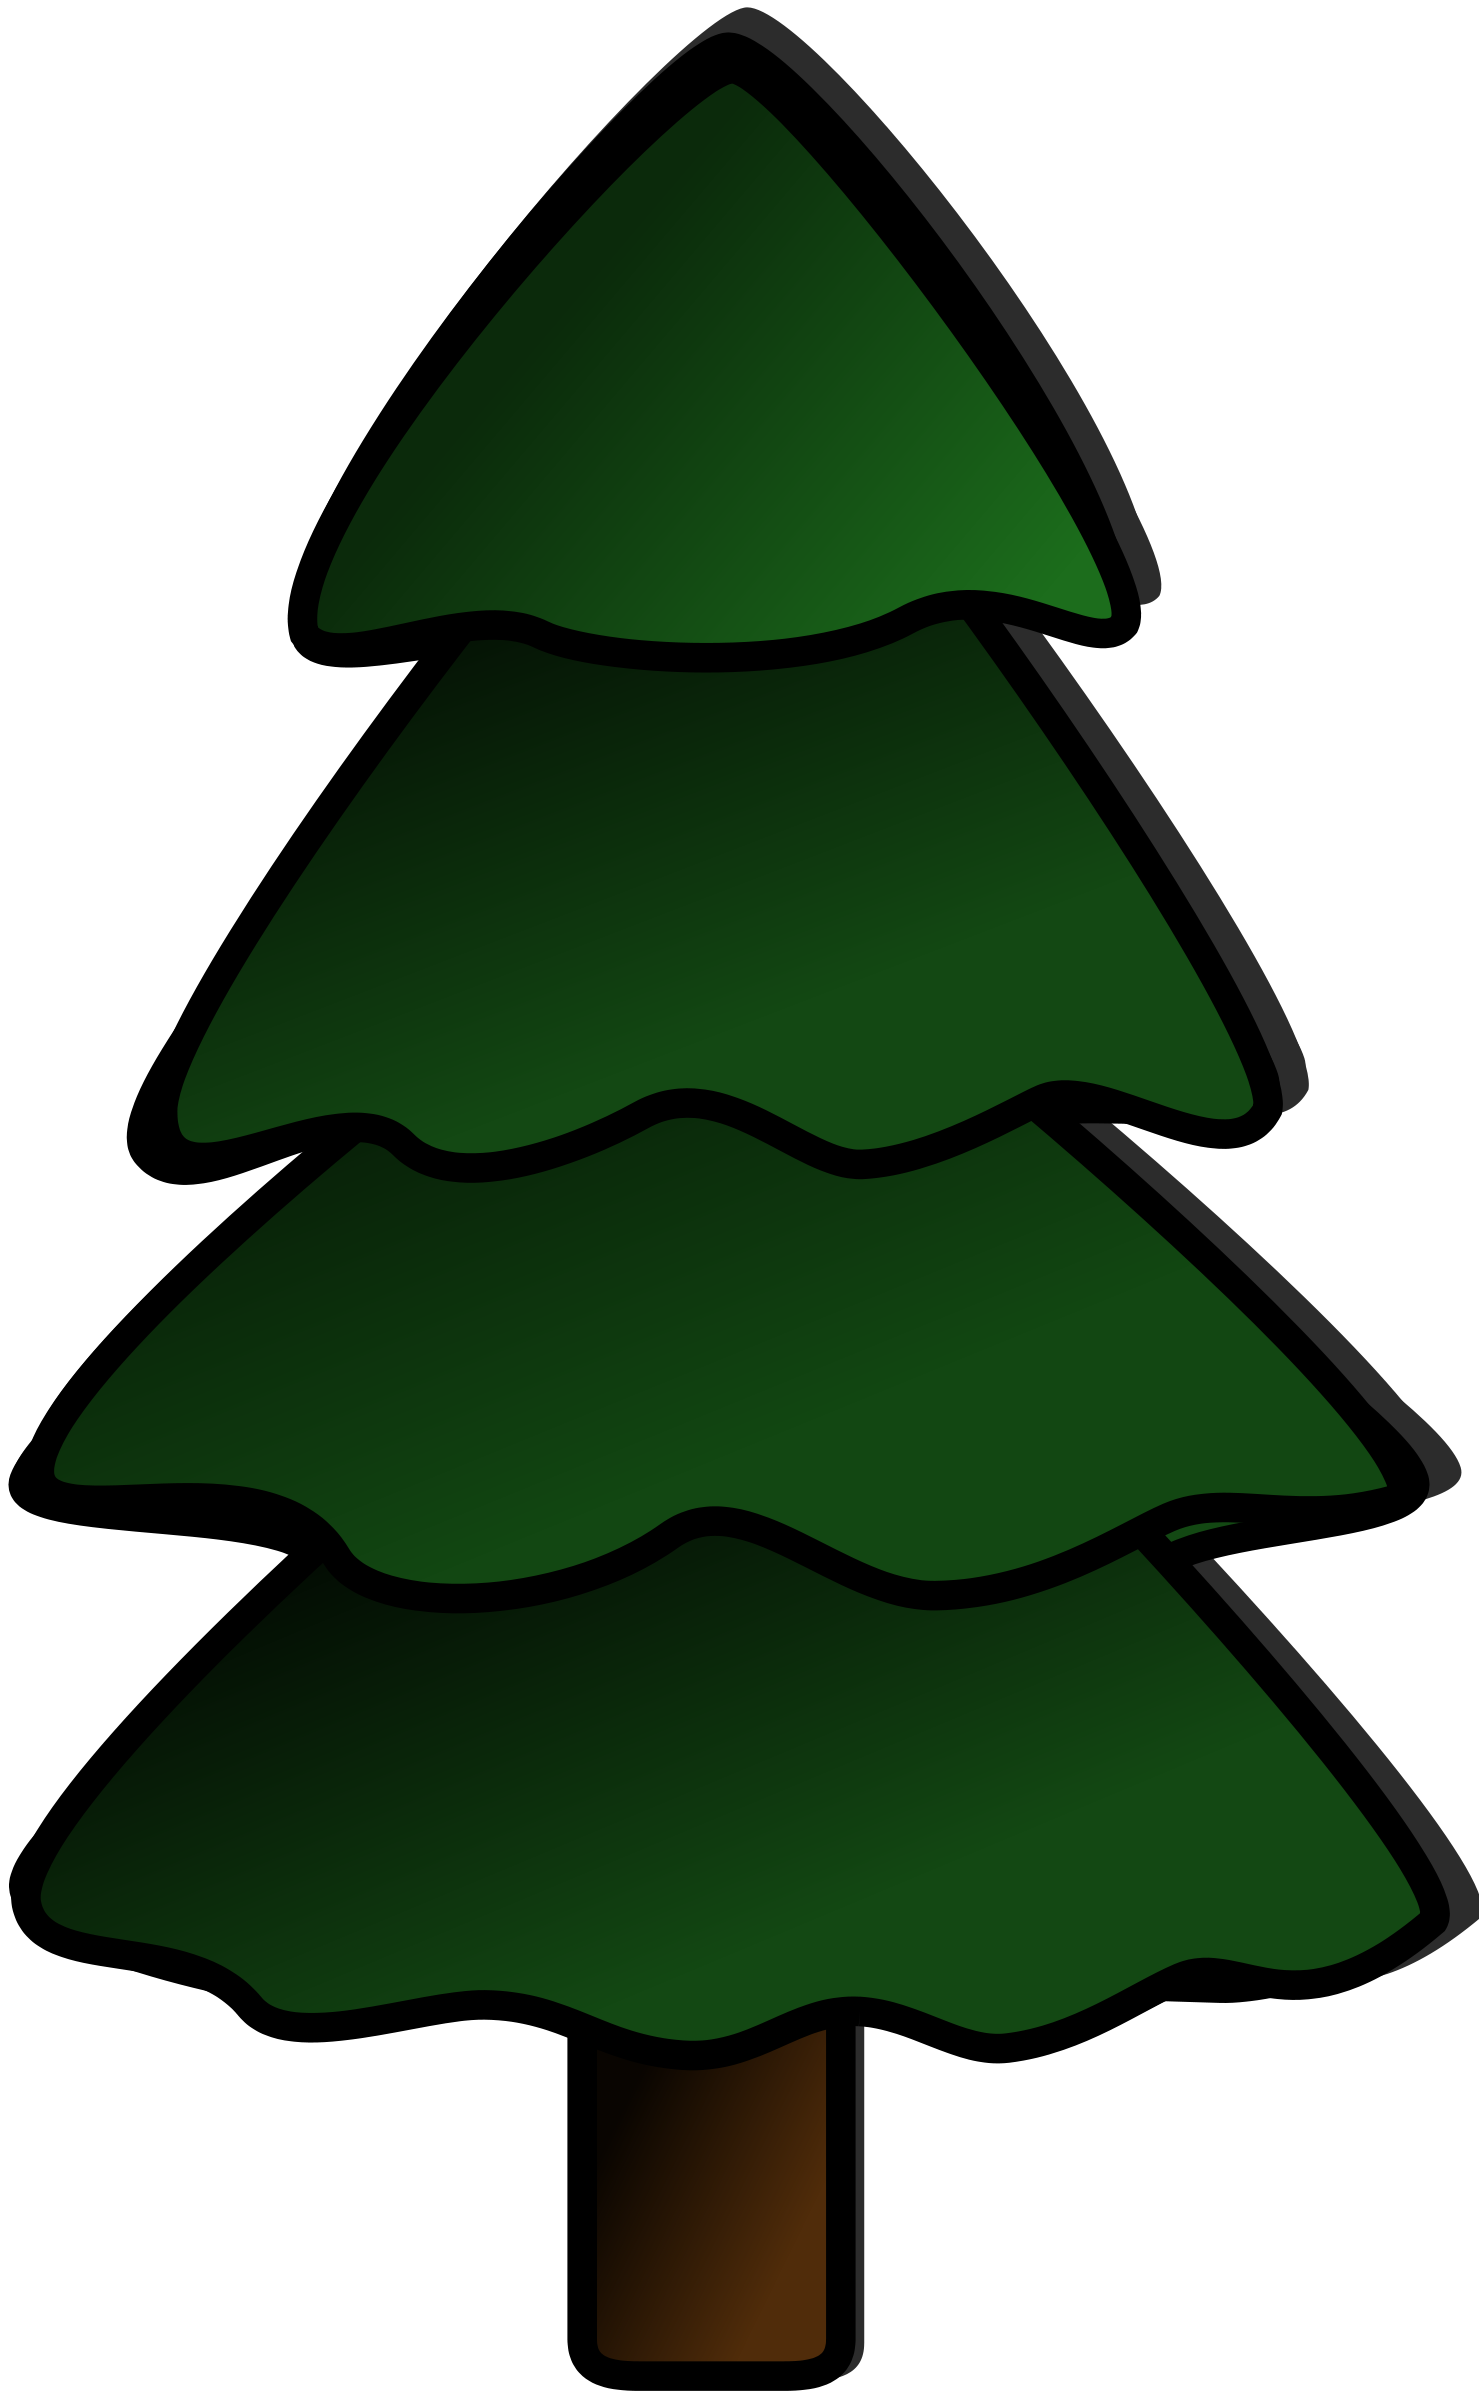 Evergreen clipart forrest tree. Trees silhouette at getdrawings